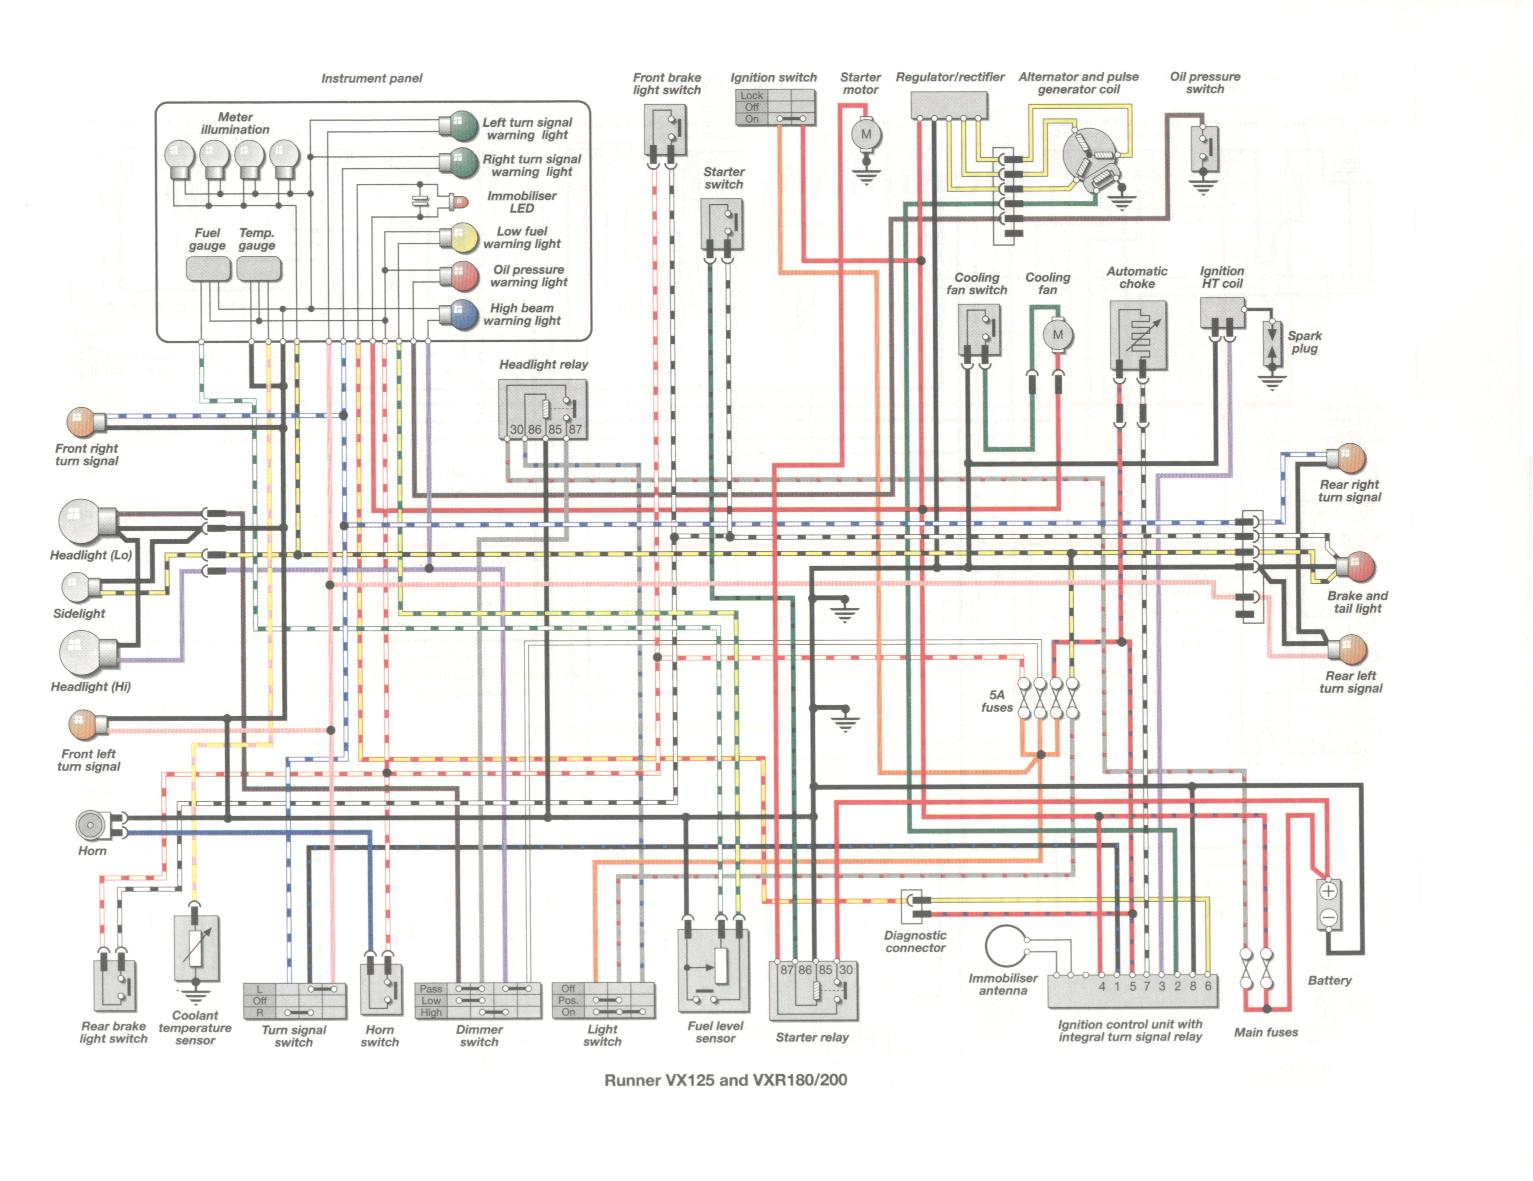 Nexus 4 Circuit Diagram Wiring Diagrams Electrical Questions Images Gallery